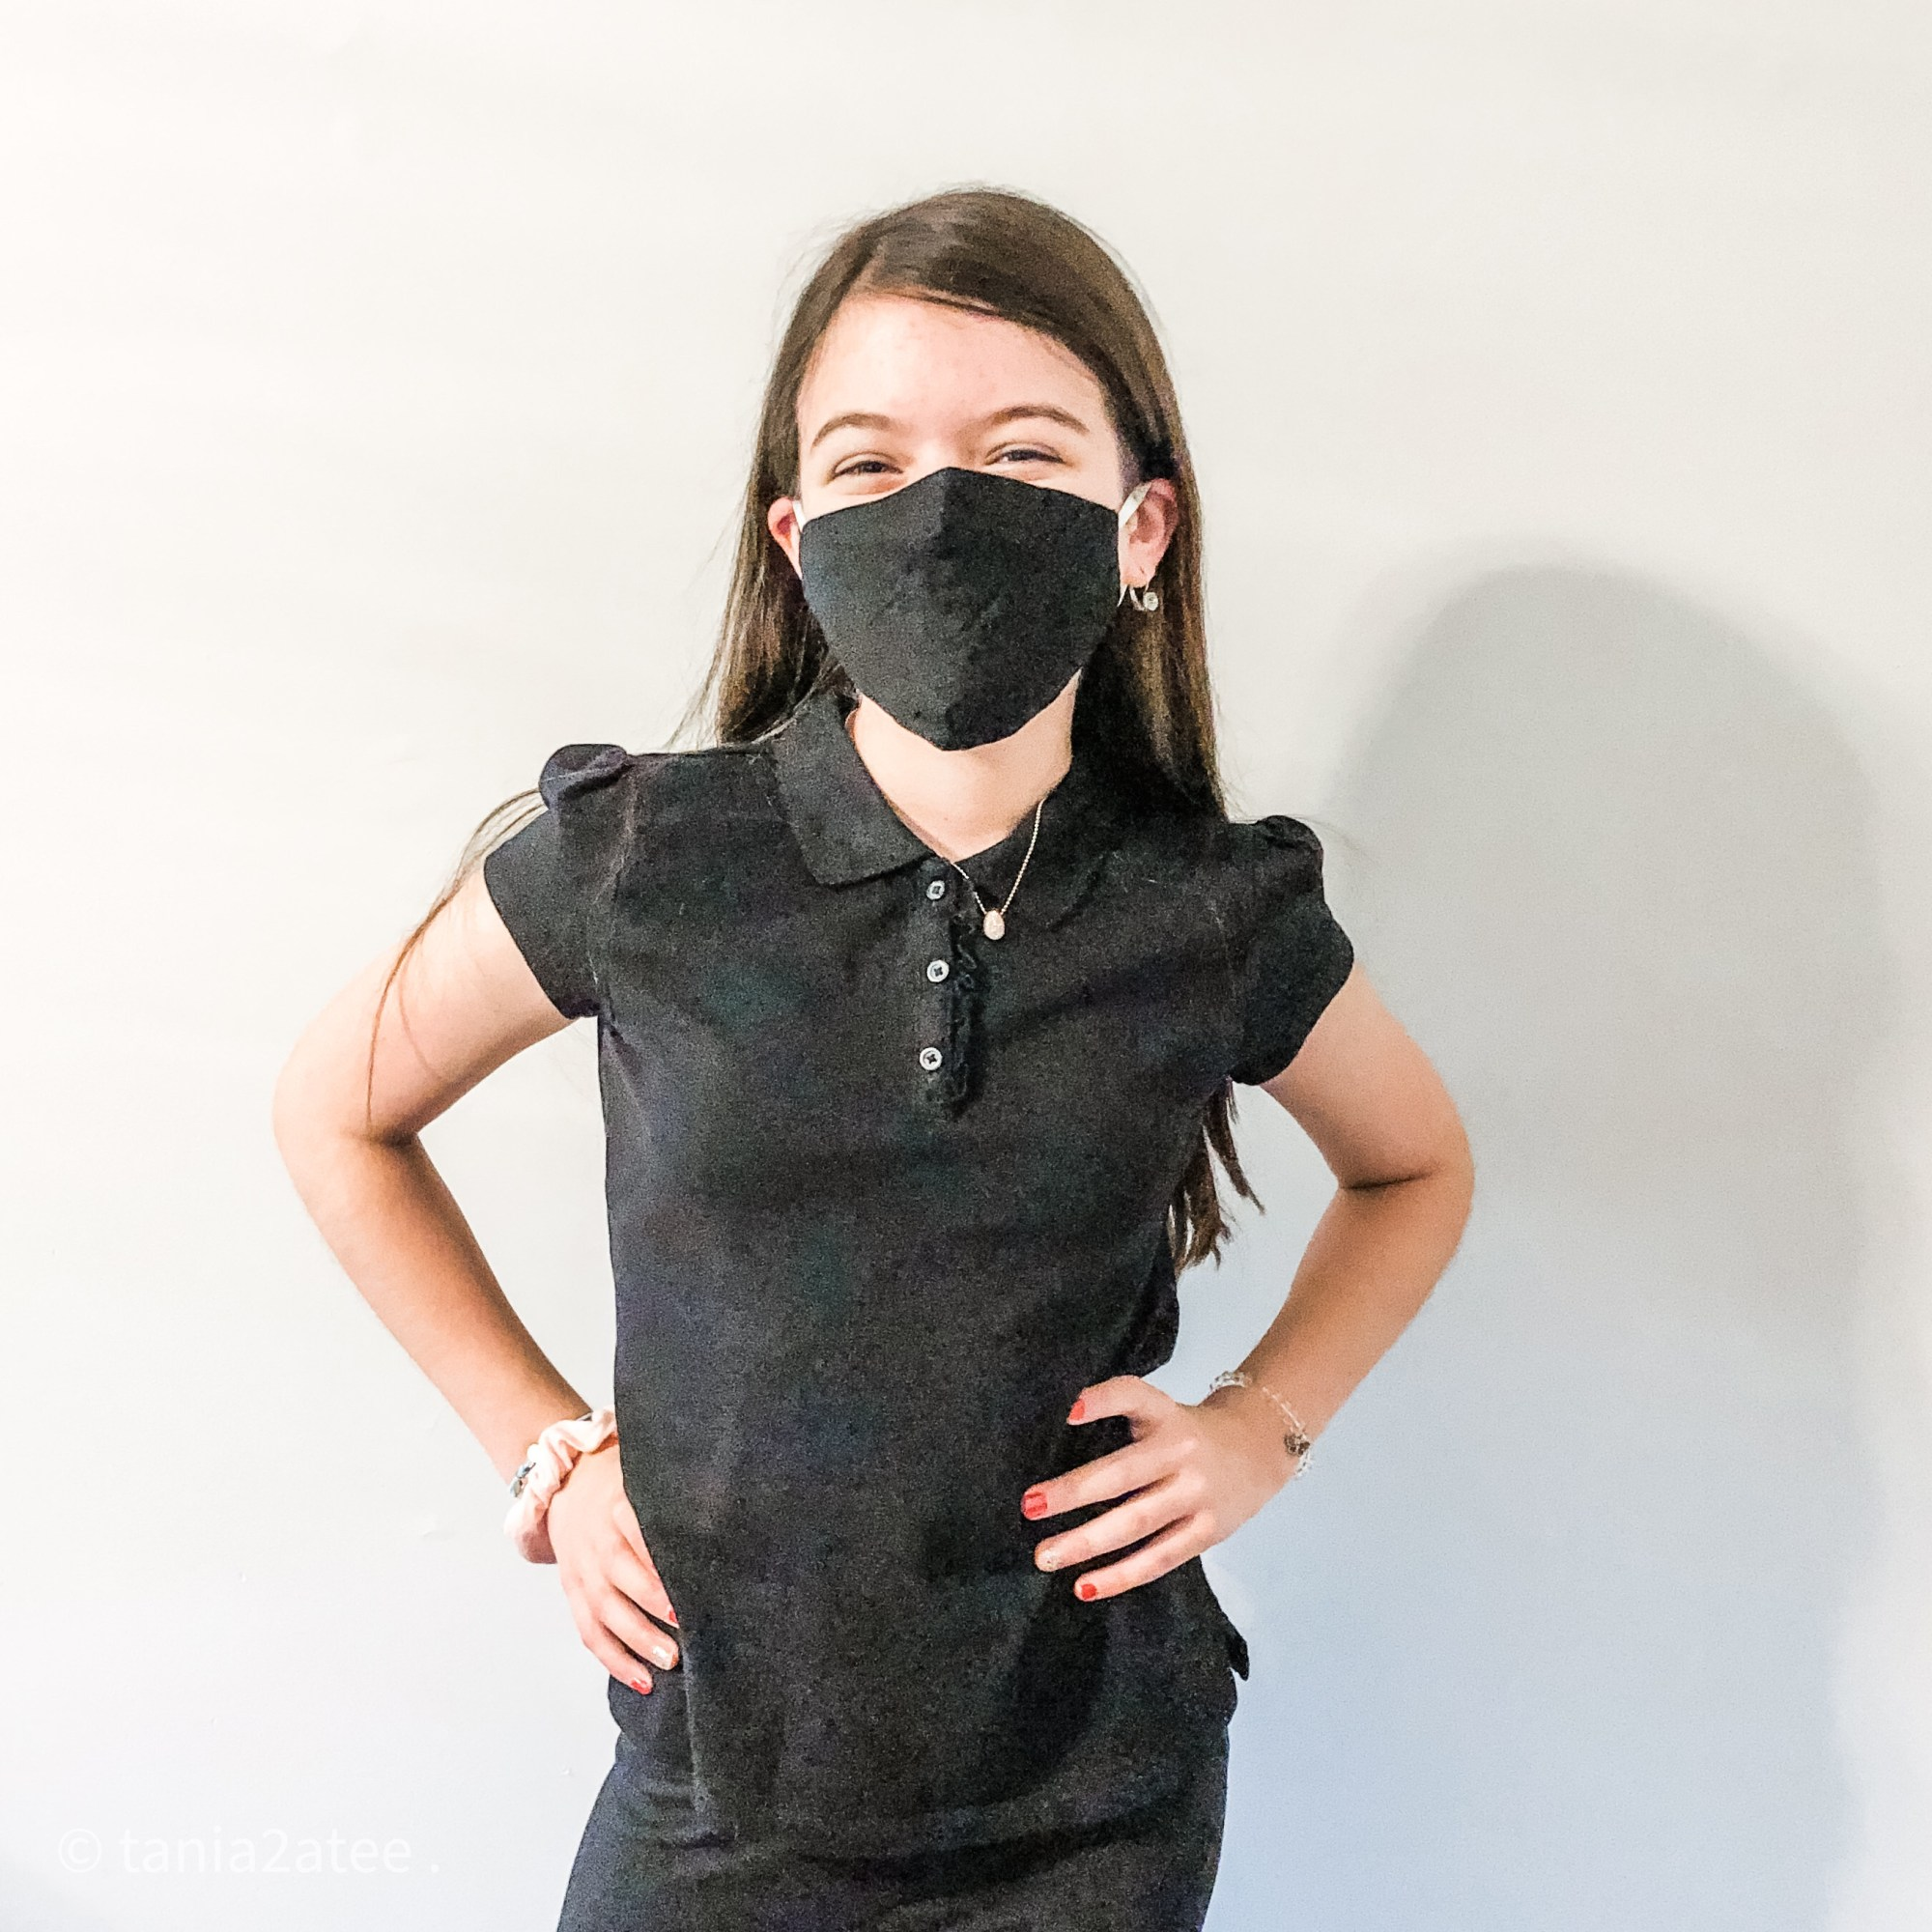 girl posing for camera wearing black top and pants and black face mask